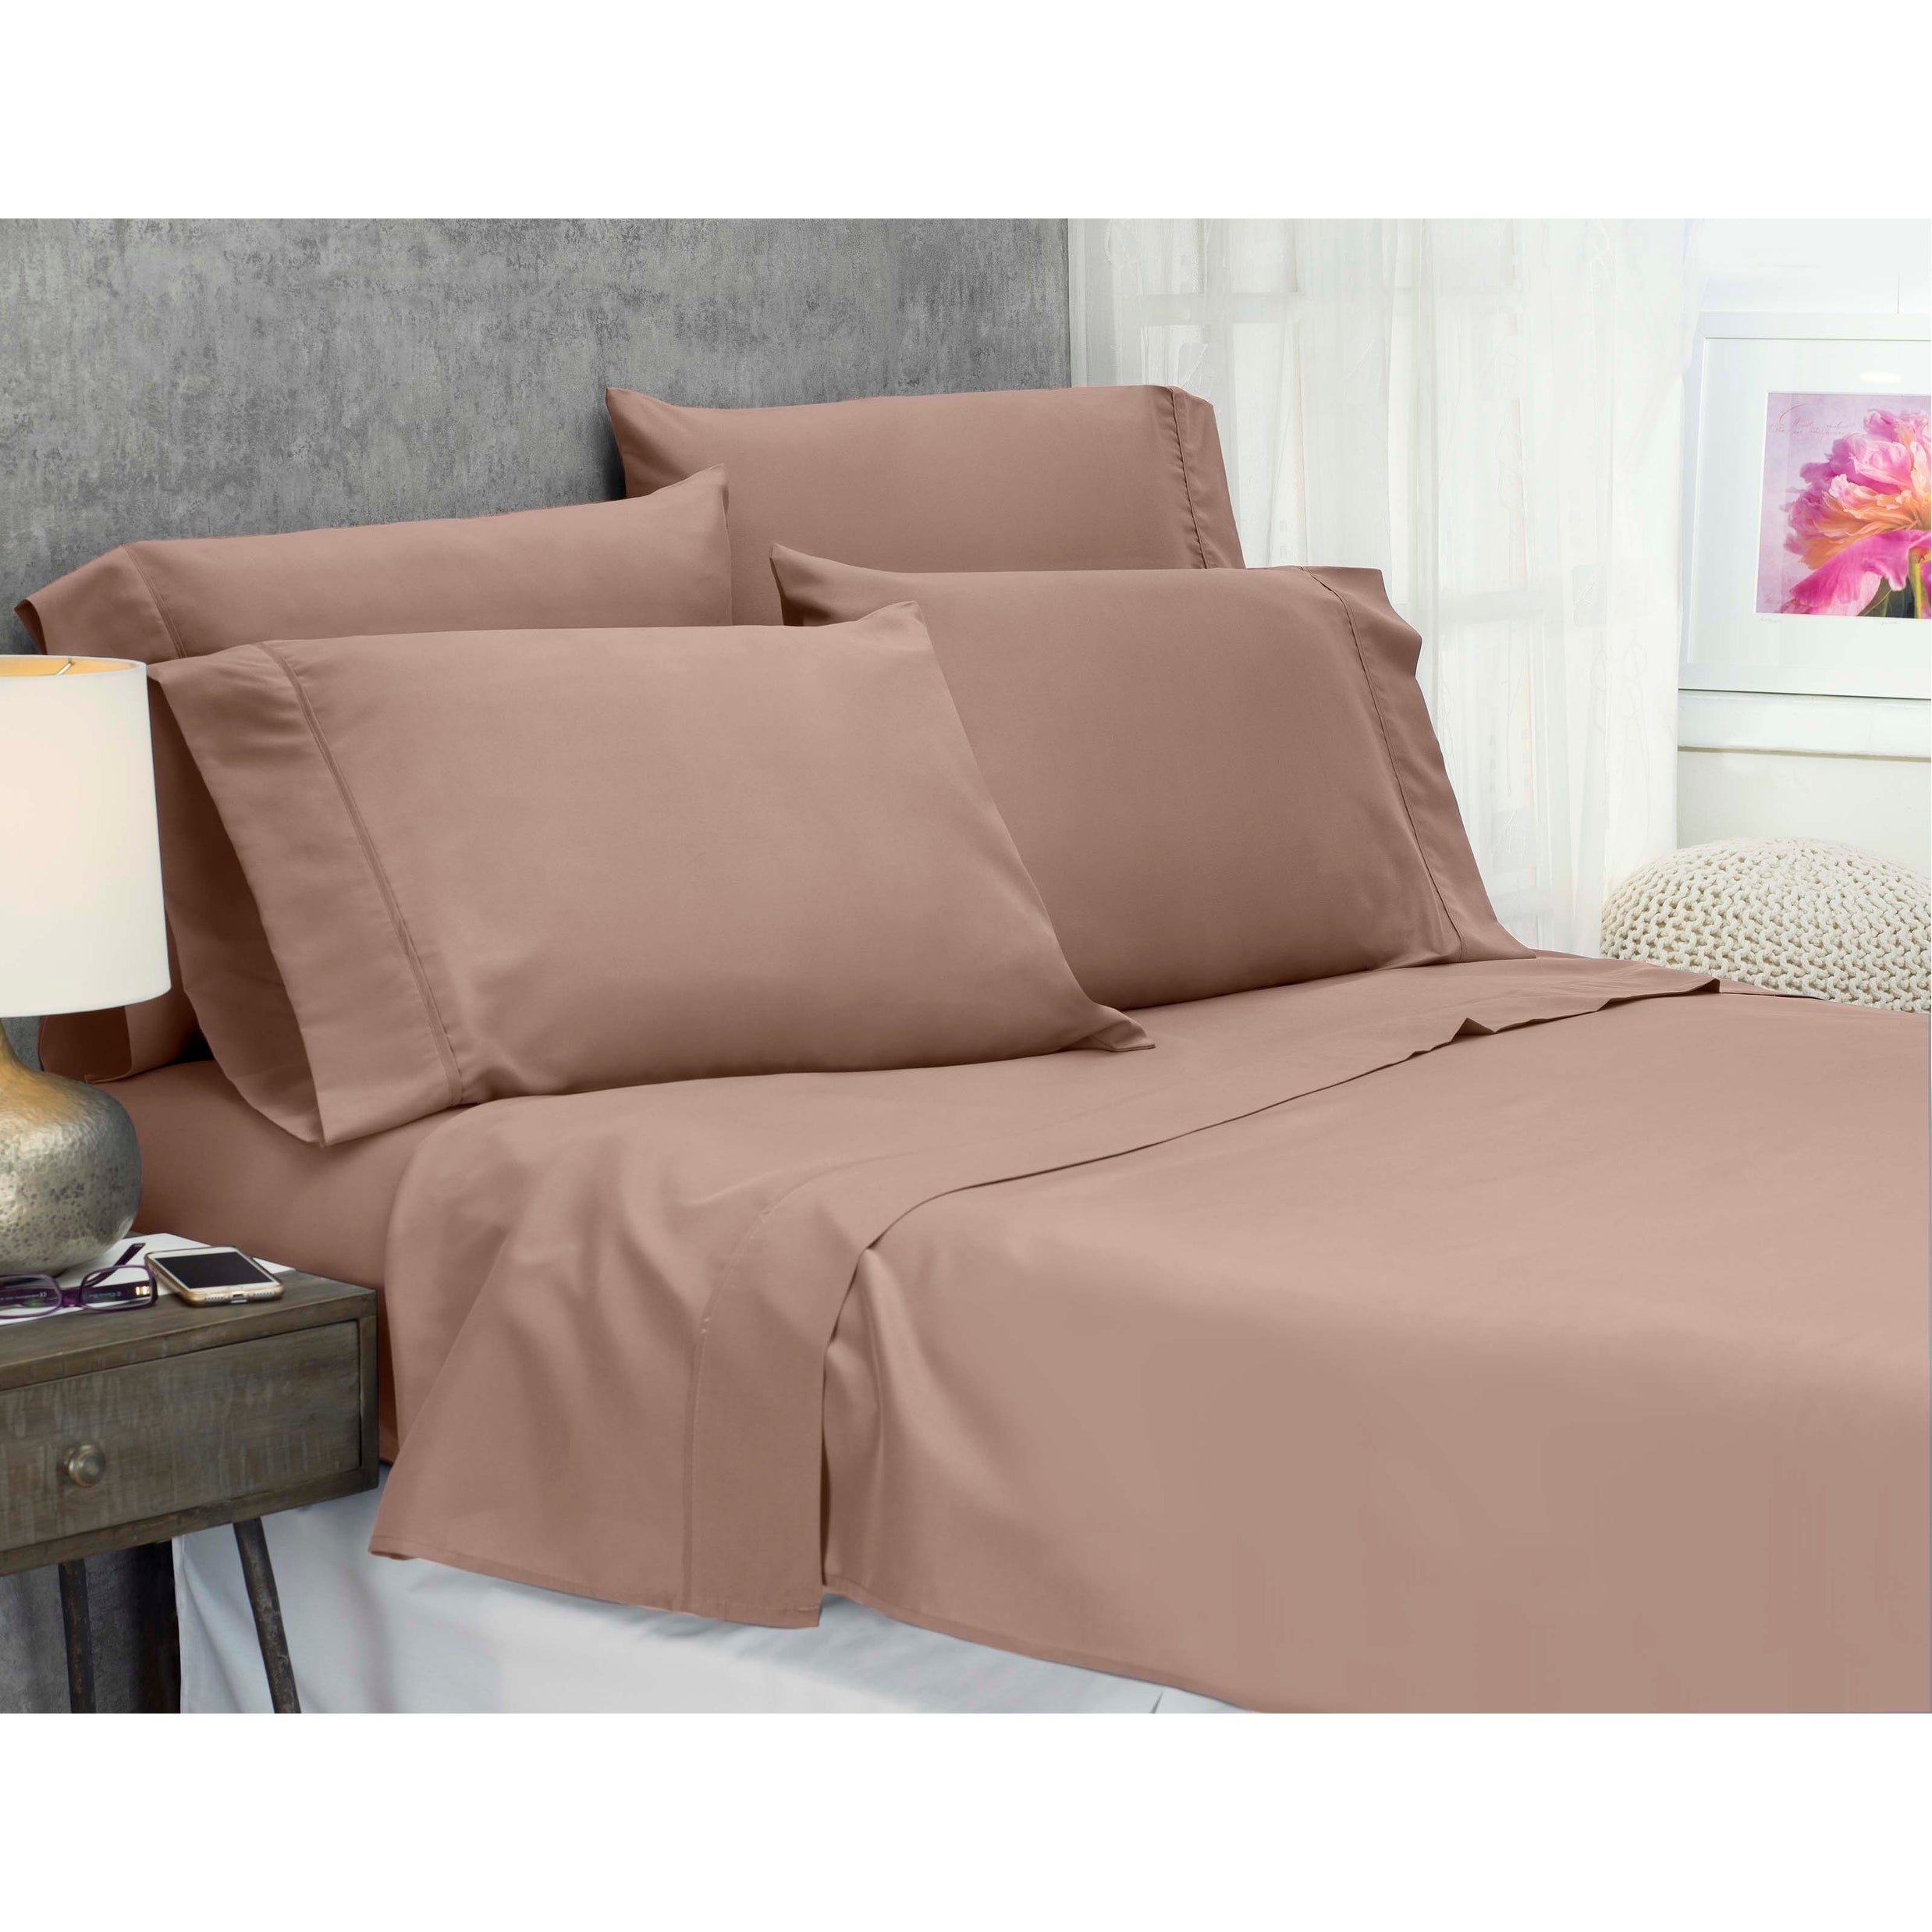 Sofa Bed Sheet Sets